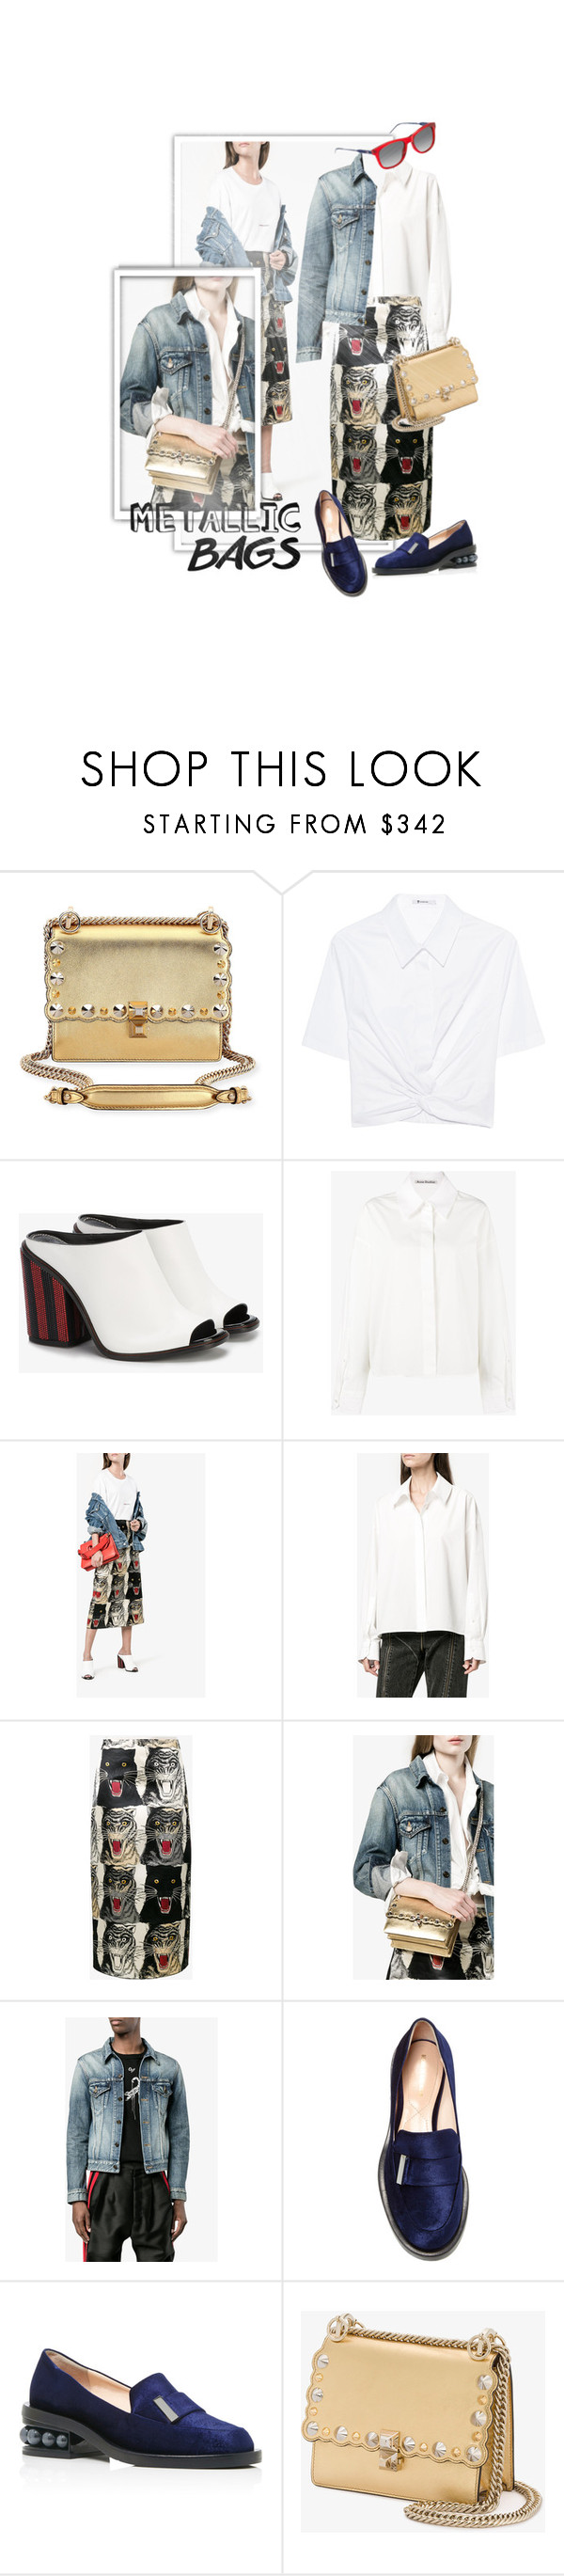 """""""Metallic Bag"""" by ivyargmagno ❤ liked on Polyvore featuring Fendi, T By Alexander Wang, Proenza Schouler, Acne Studios, Gucci, Yves Saint Laurent, Nicholas Kirkwood and Tommy Hilfiger"""